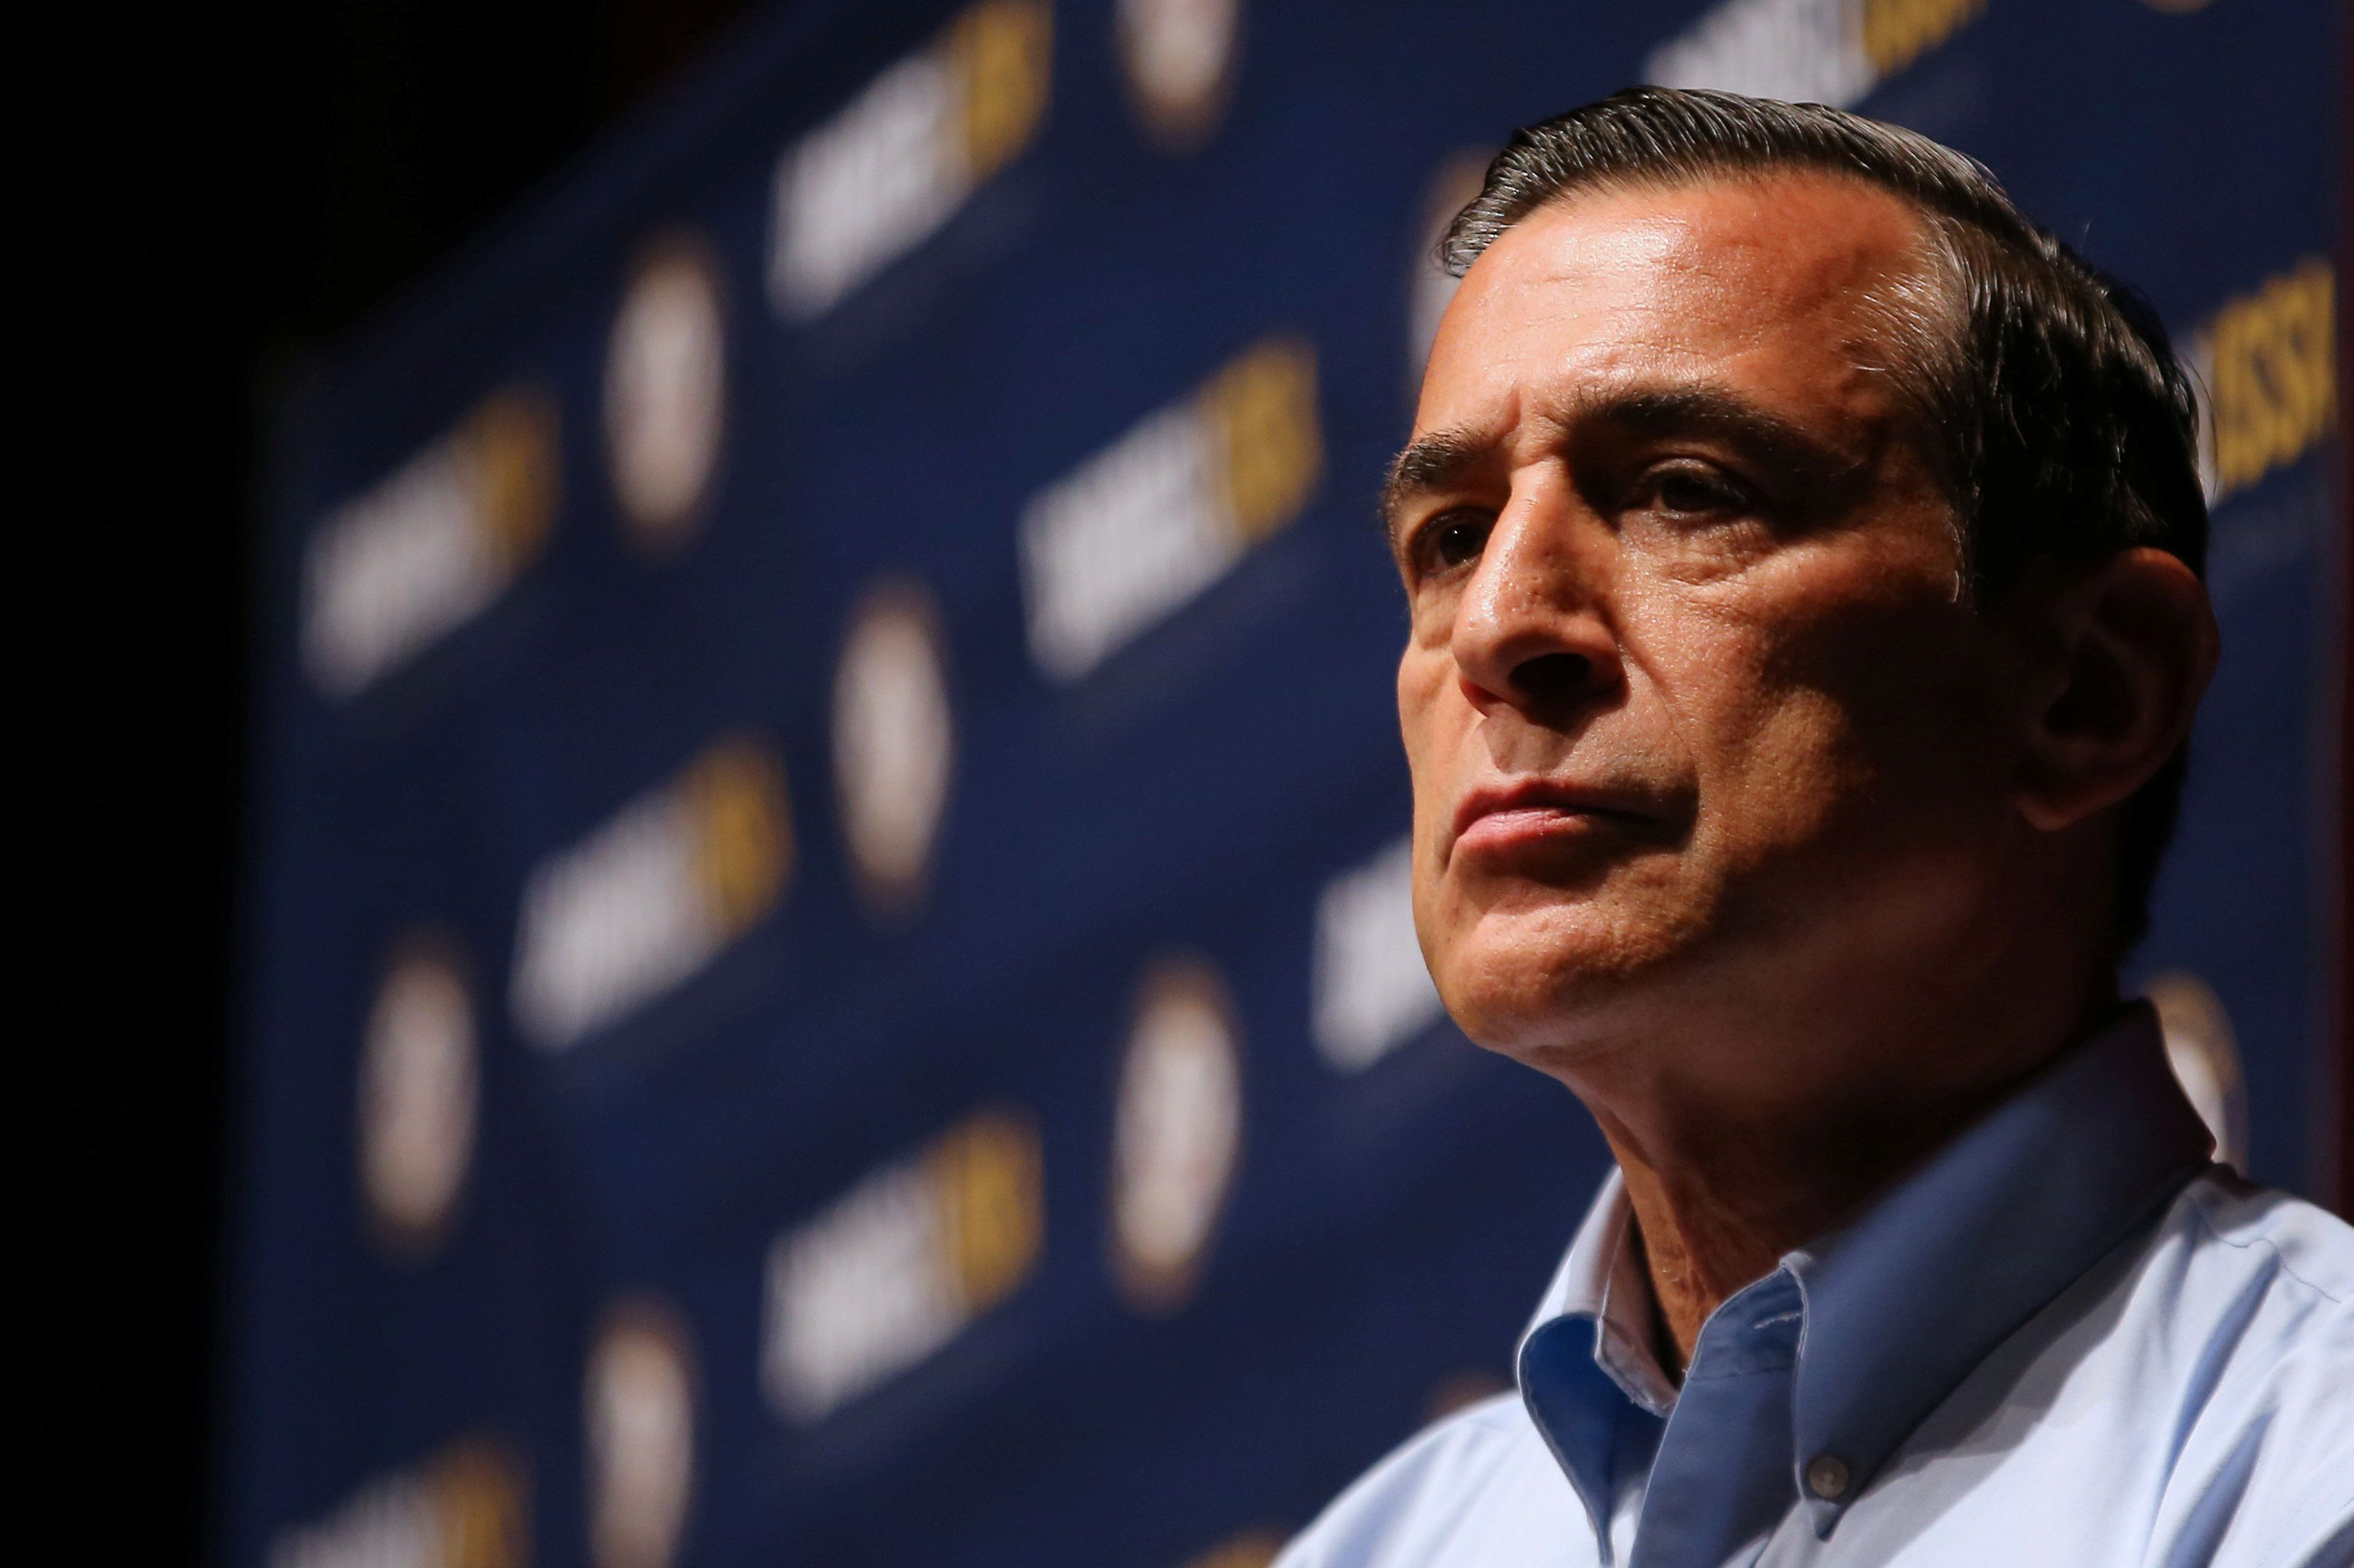 Rep. Darrell Issa will not run for re-election in 2018.